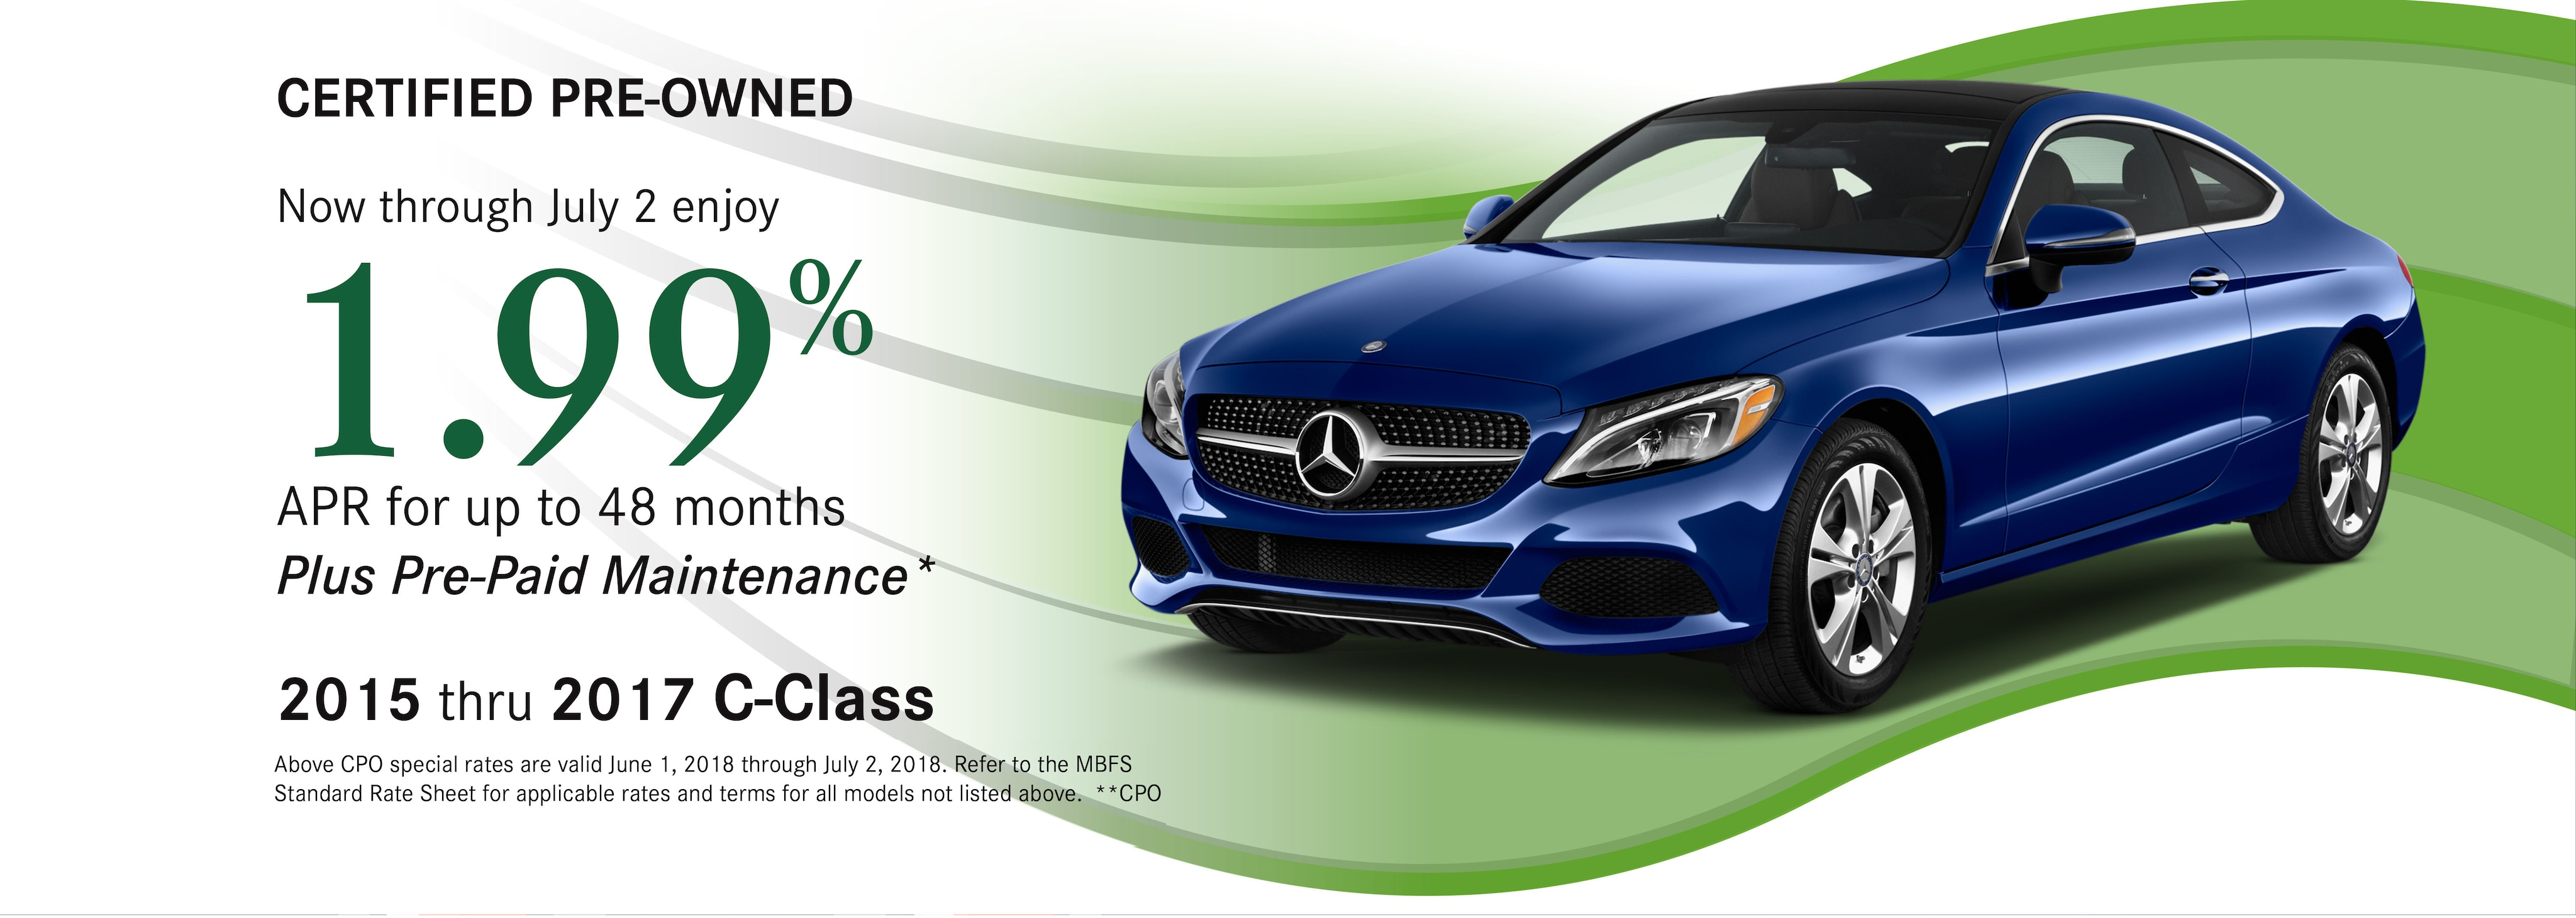 wheel best base benz for safety rear mercedes new drive deals e price photos cl class cars sedan photo reviews lease